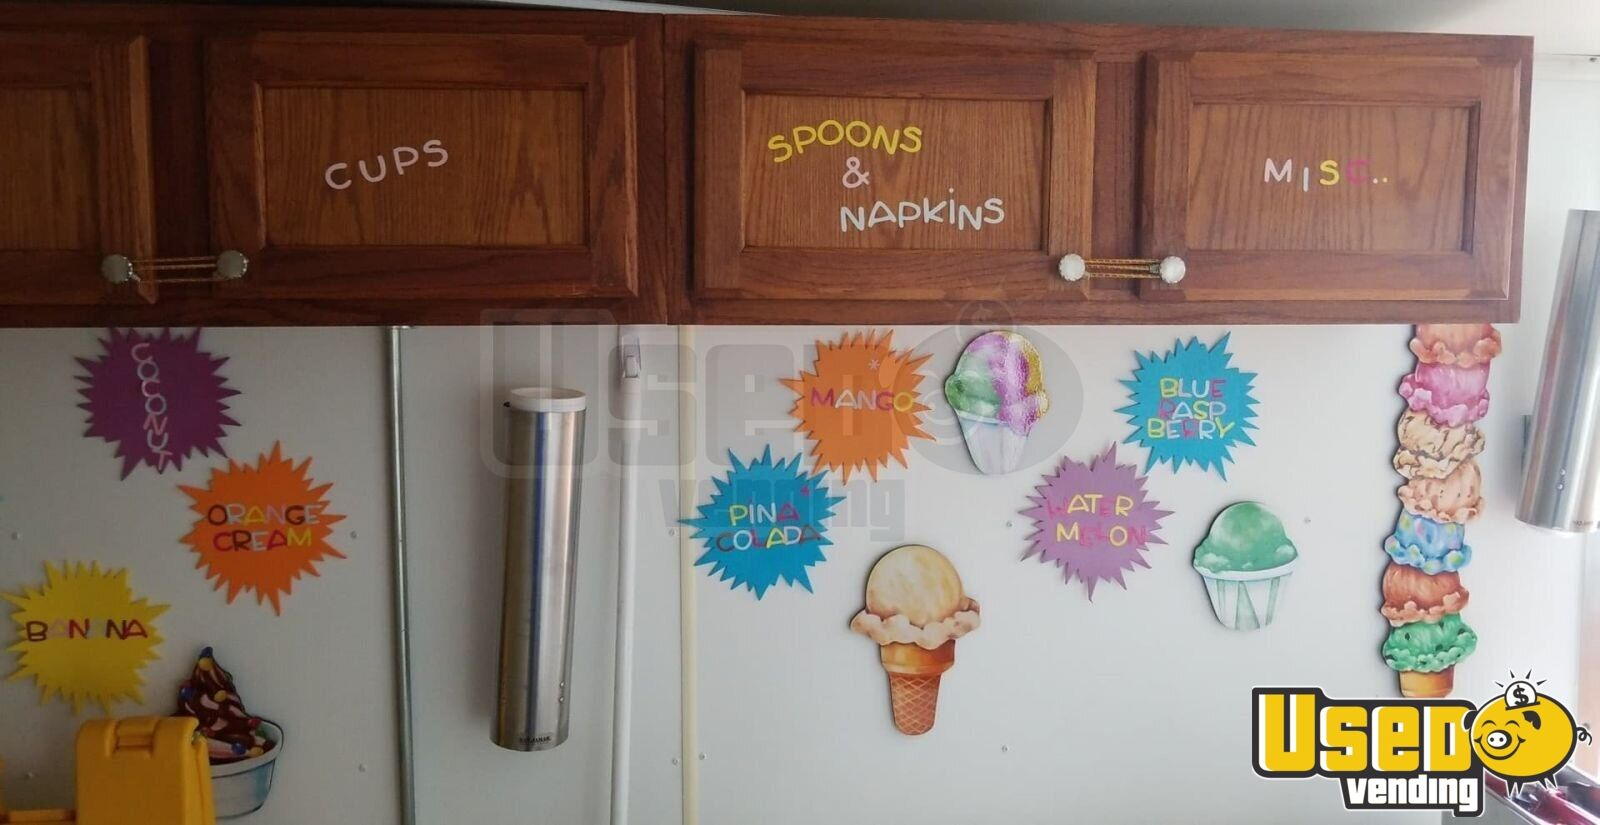 2014 Look Ice Cream Trailer Insulated Walls Florida for Sale - 6